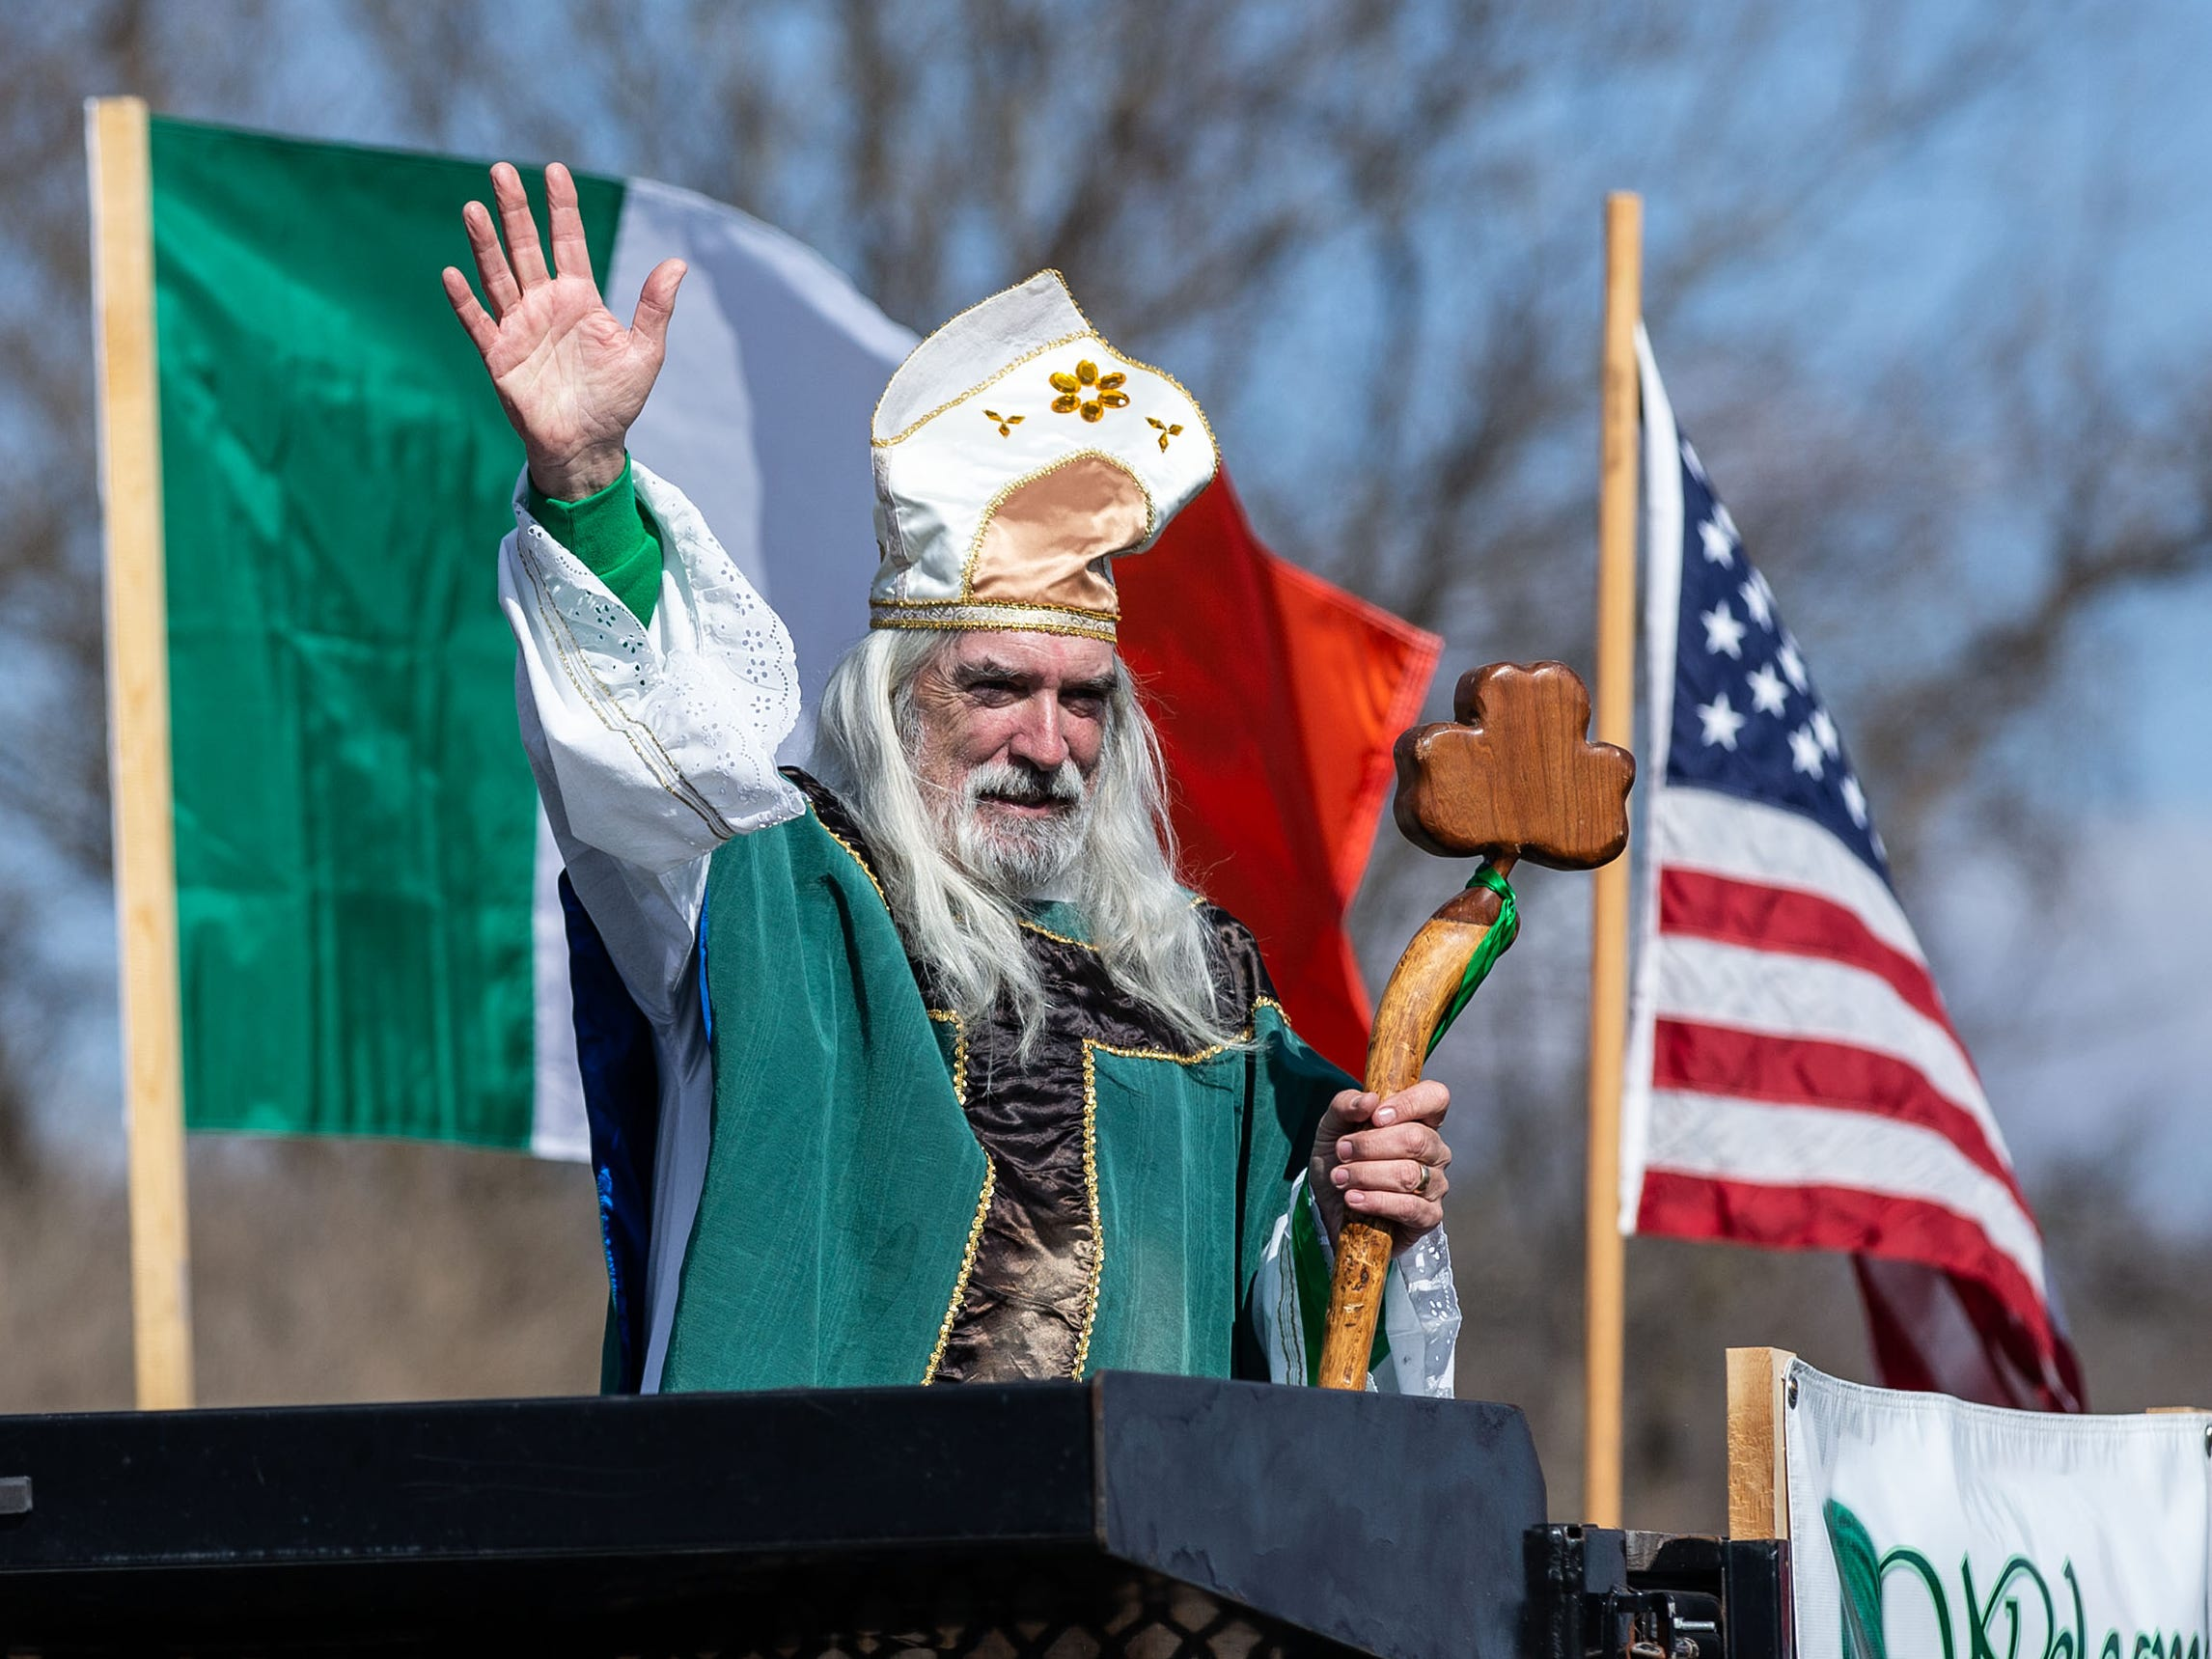 St. Patrick leads the procession south on Highway K during the 39th annual Town of Erin St. Patrick's Day Parade on Sunday, March 17, 2019.